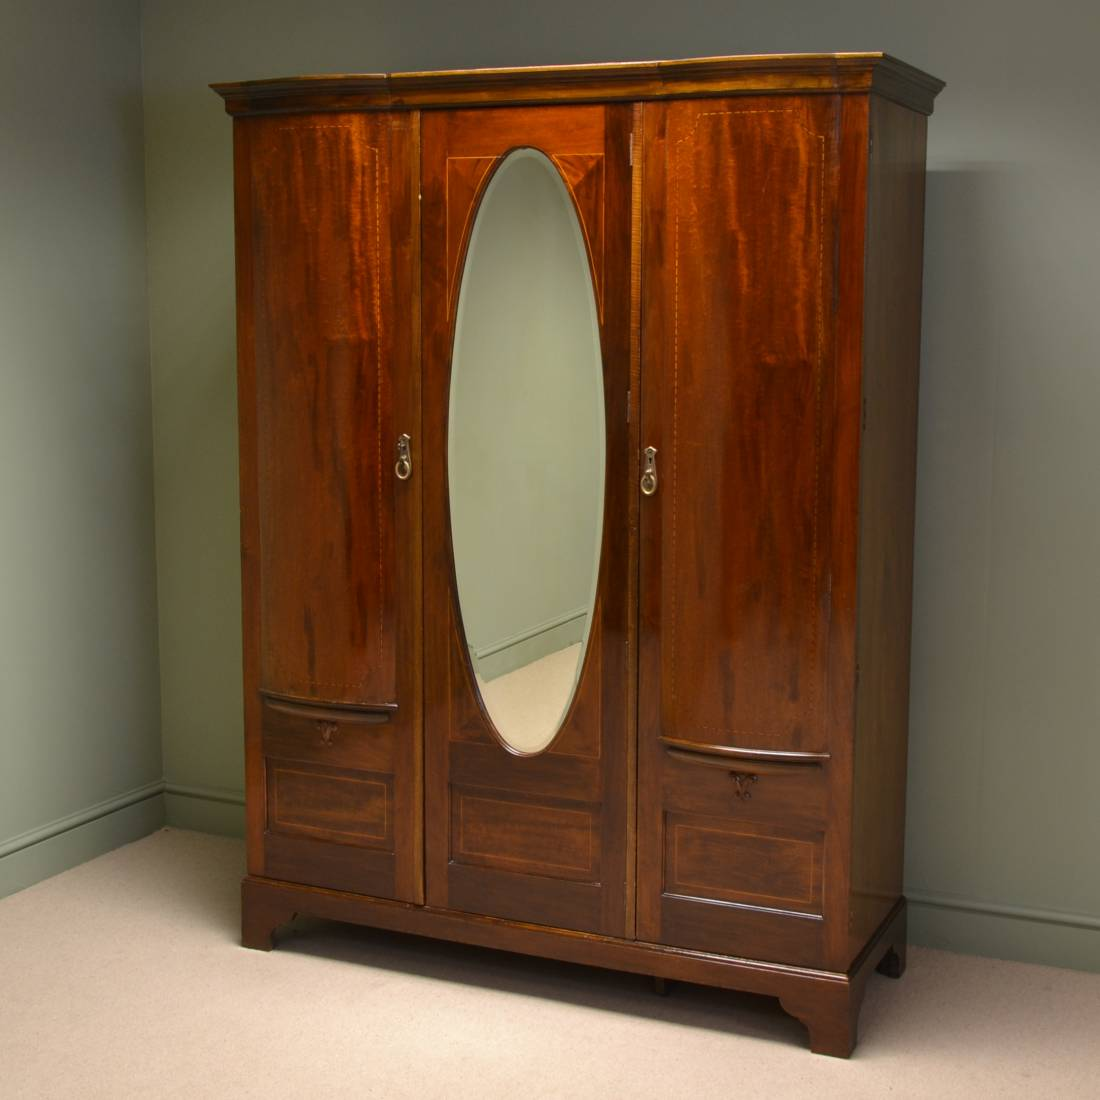 and armoires pieces at org mirror id case furniture antique armoire for storage crafts wardrobe wardrobes arts master triple sale f scotland oak